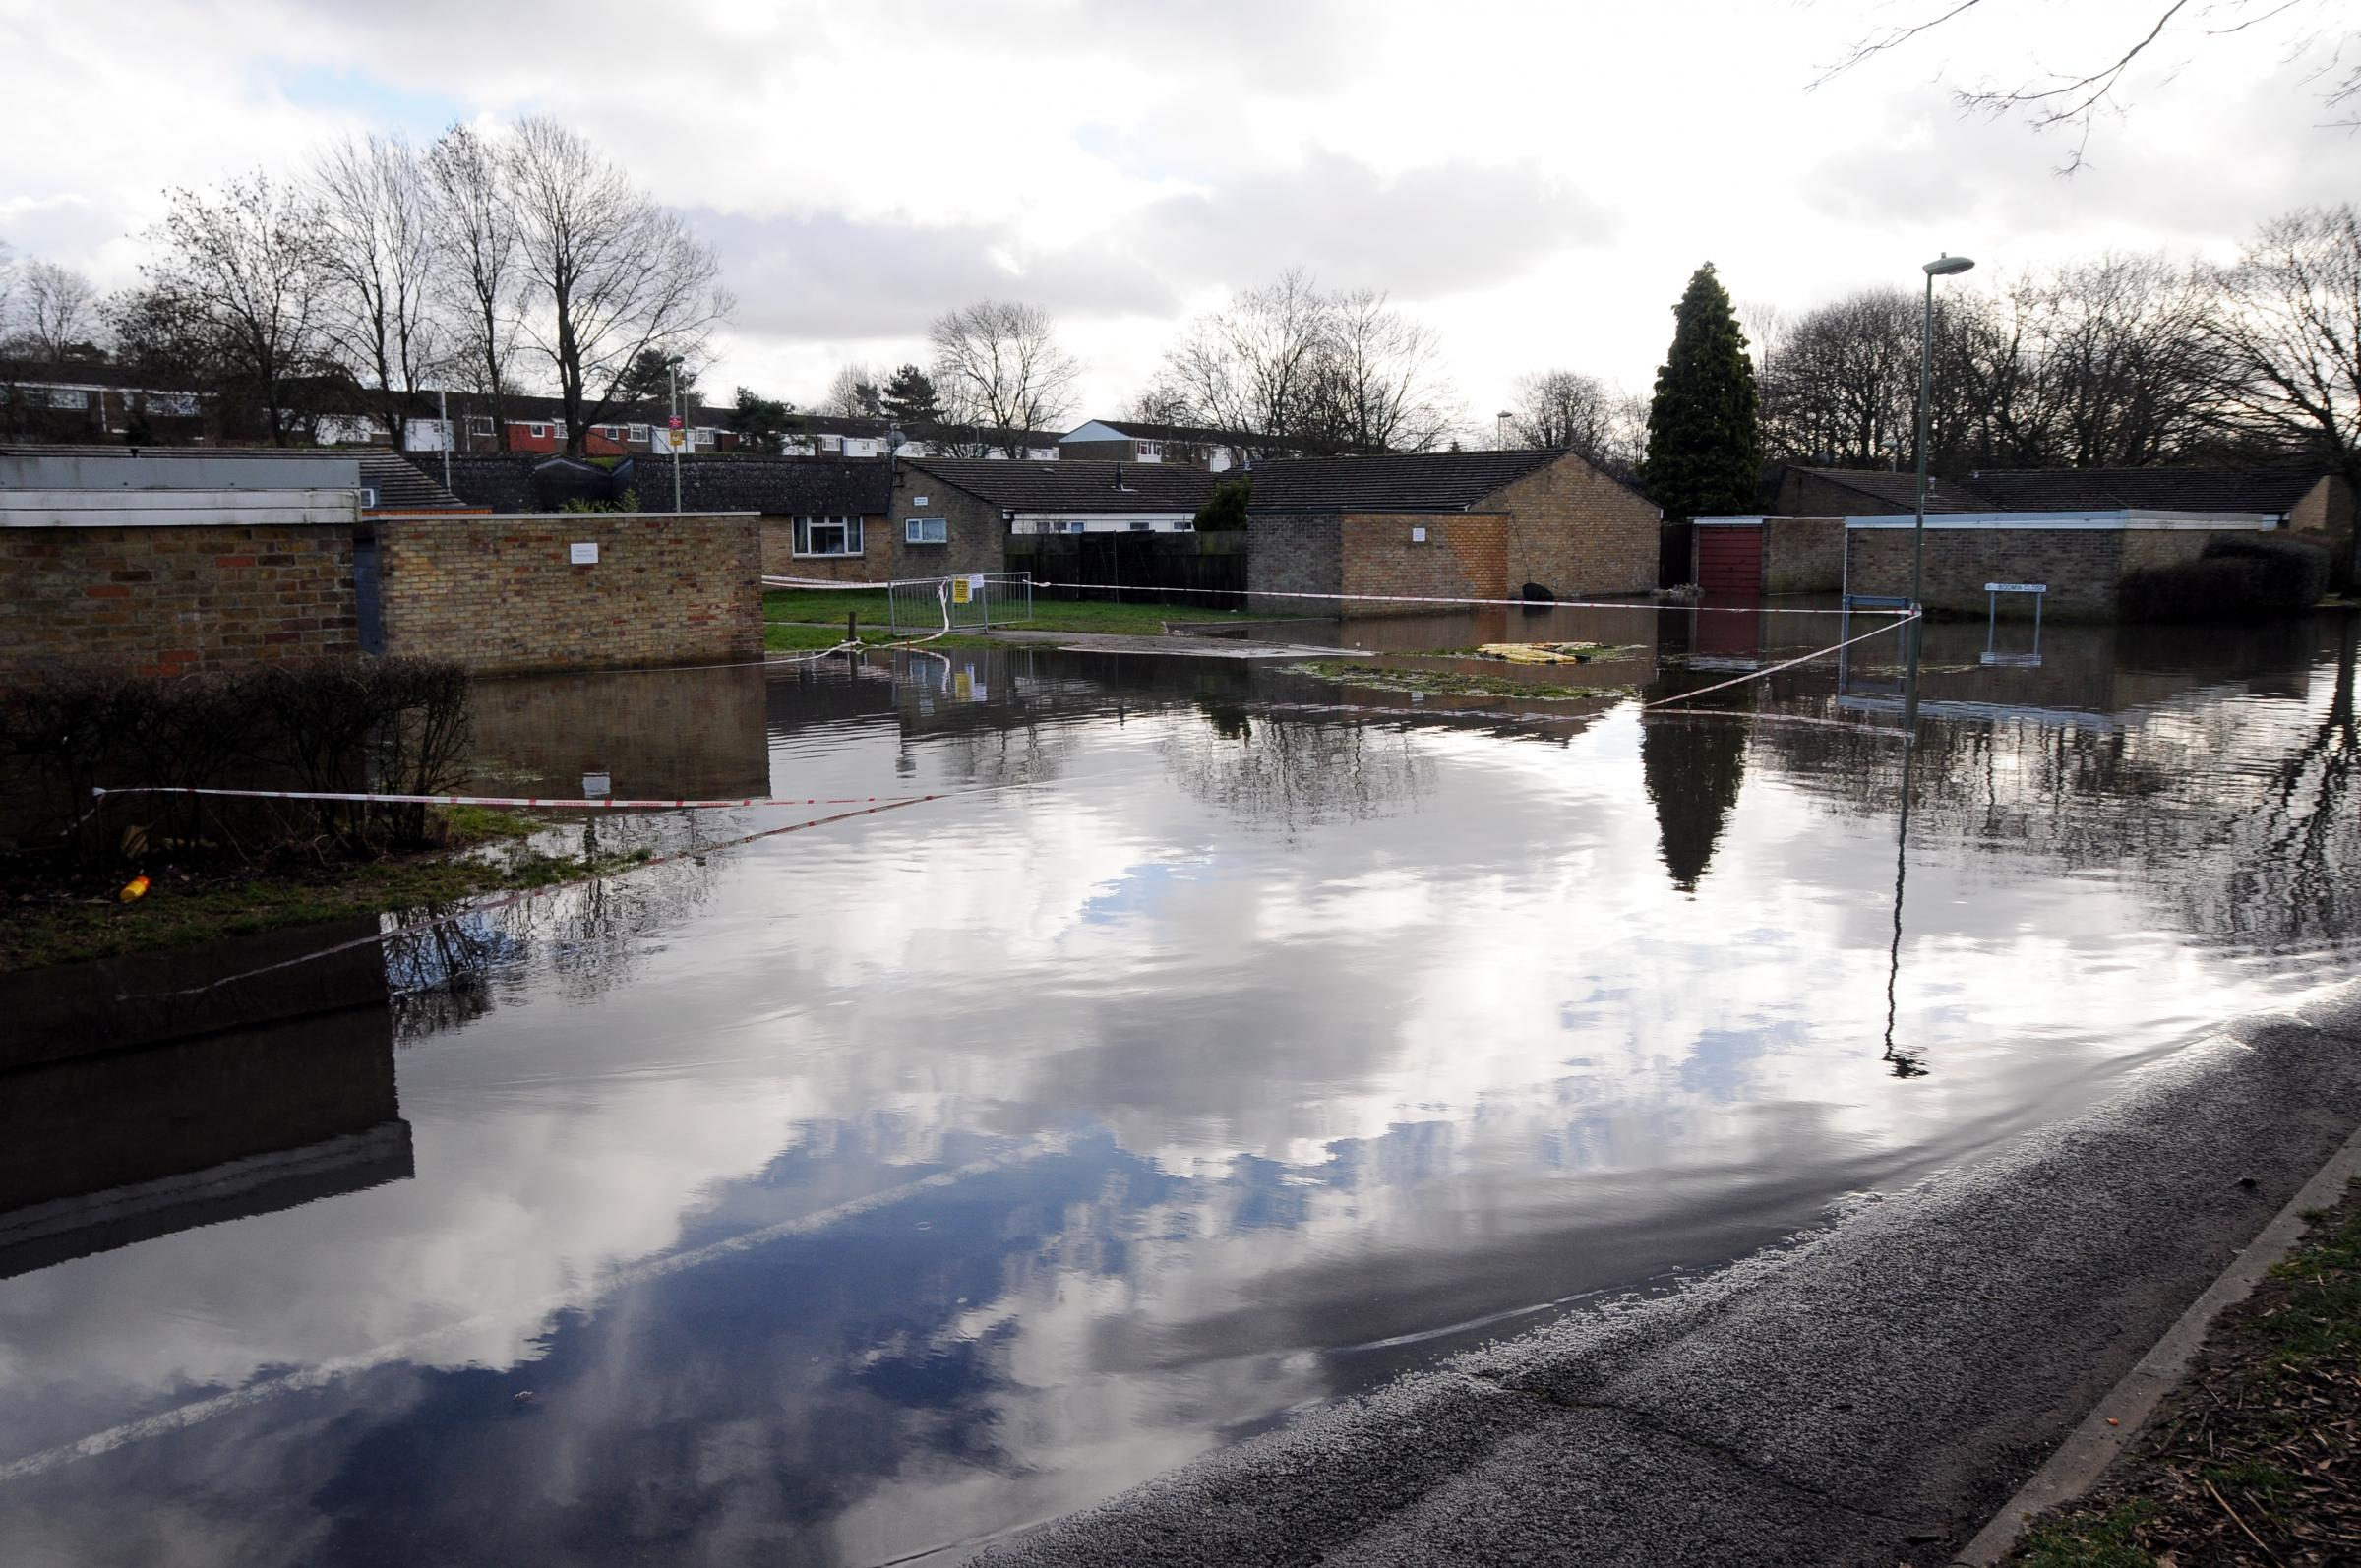 Buckskin residents evacuated to emergency rest centre in Hatch Warren as floodwater rises